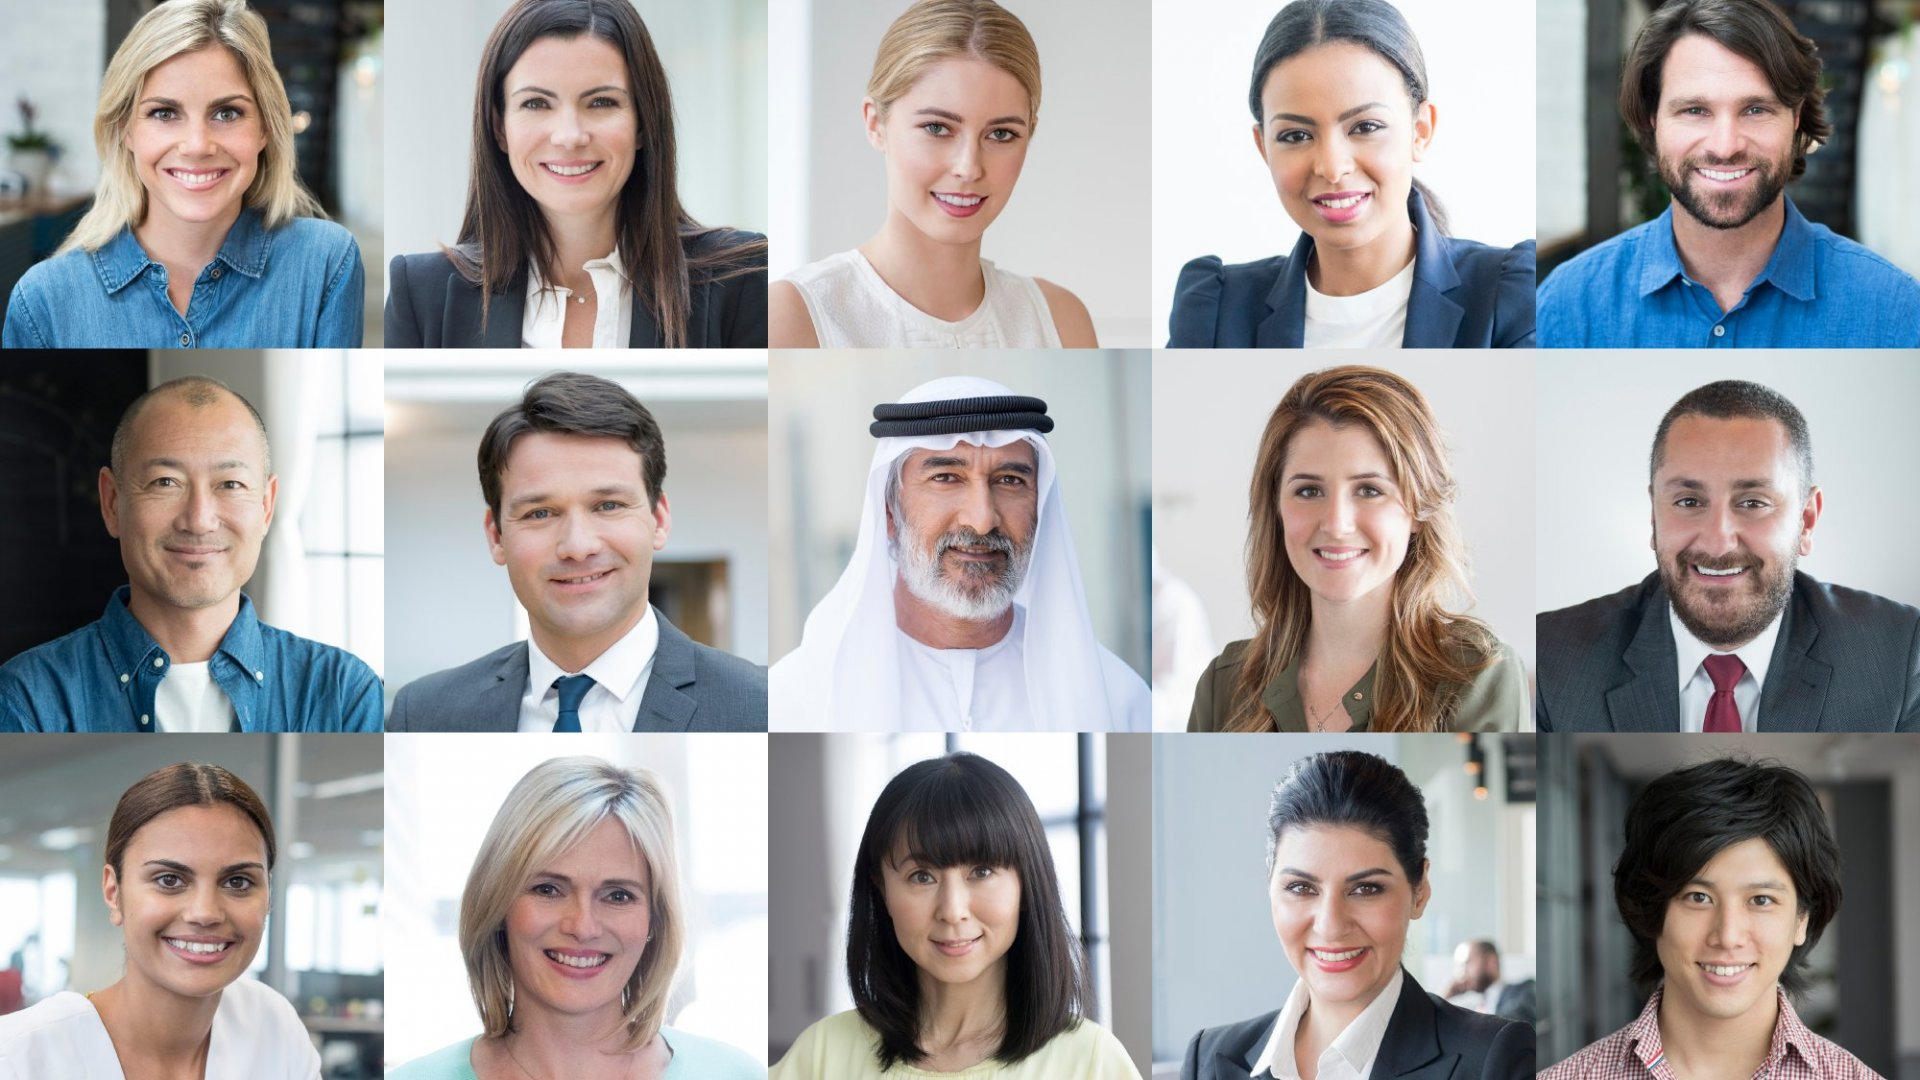 10 Tips To Develop Your Firm's Cultural Competence